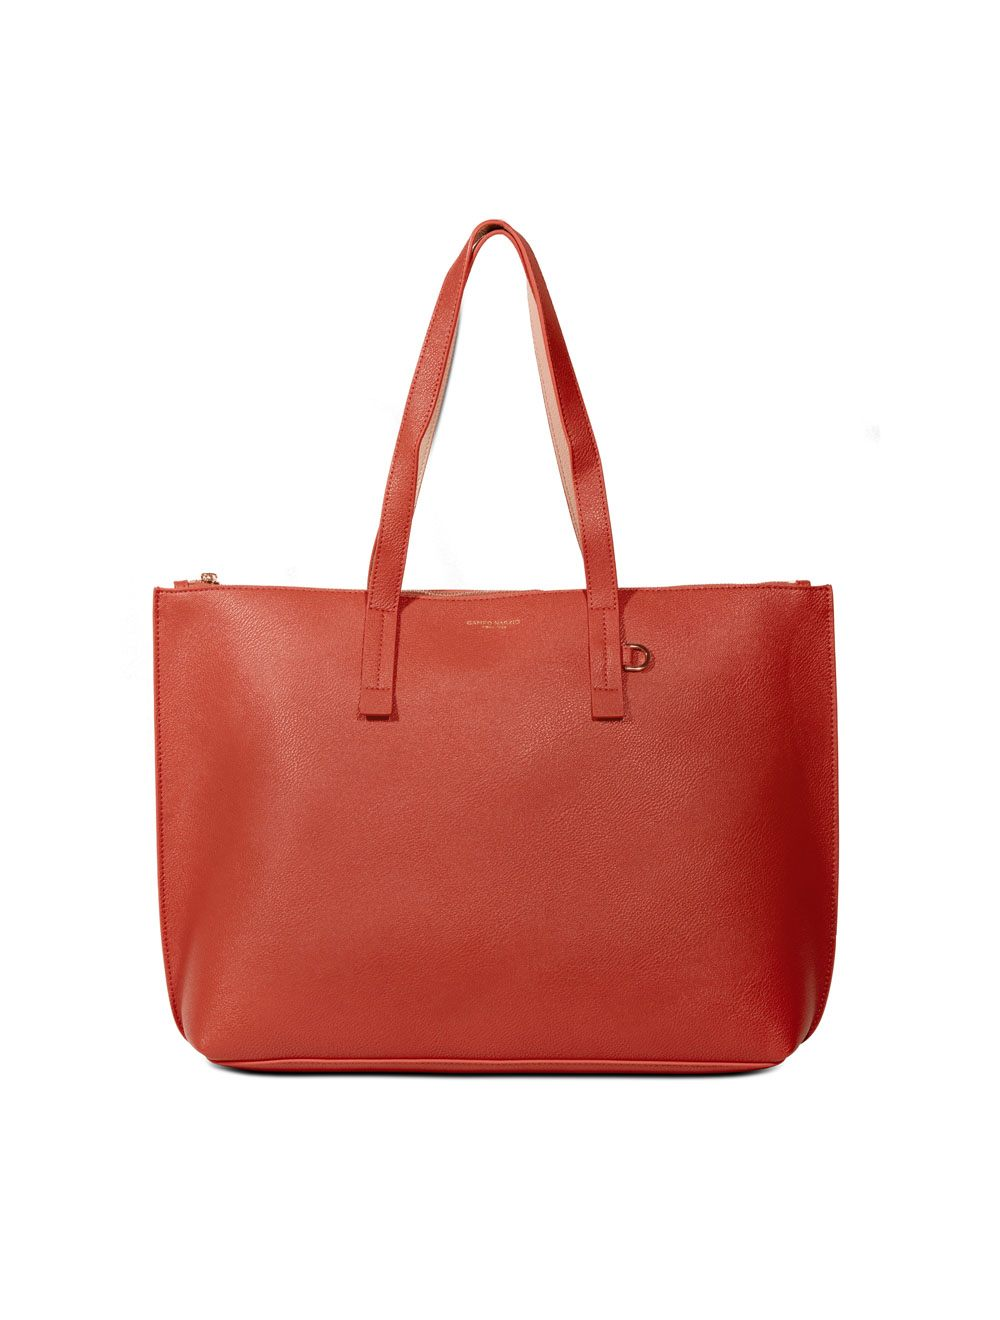 Tote Bag with Accessories (3 in 1) - Tangerine Tango